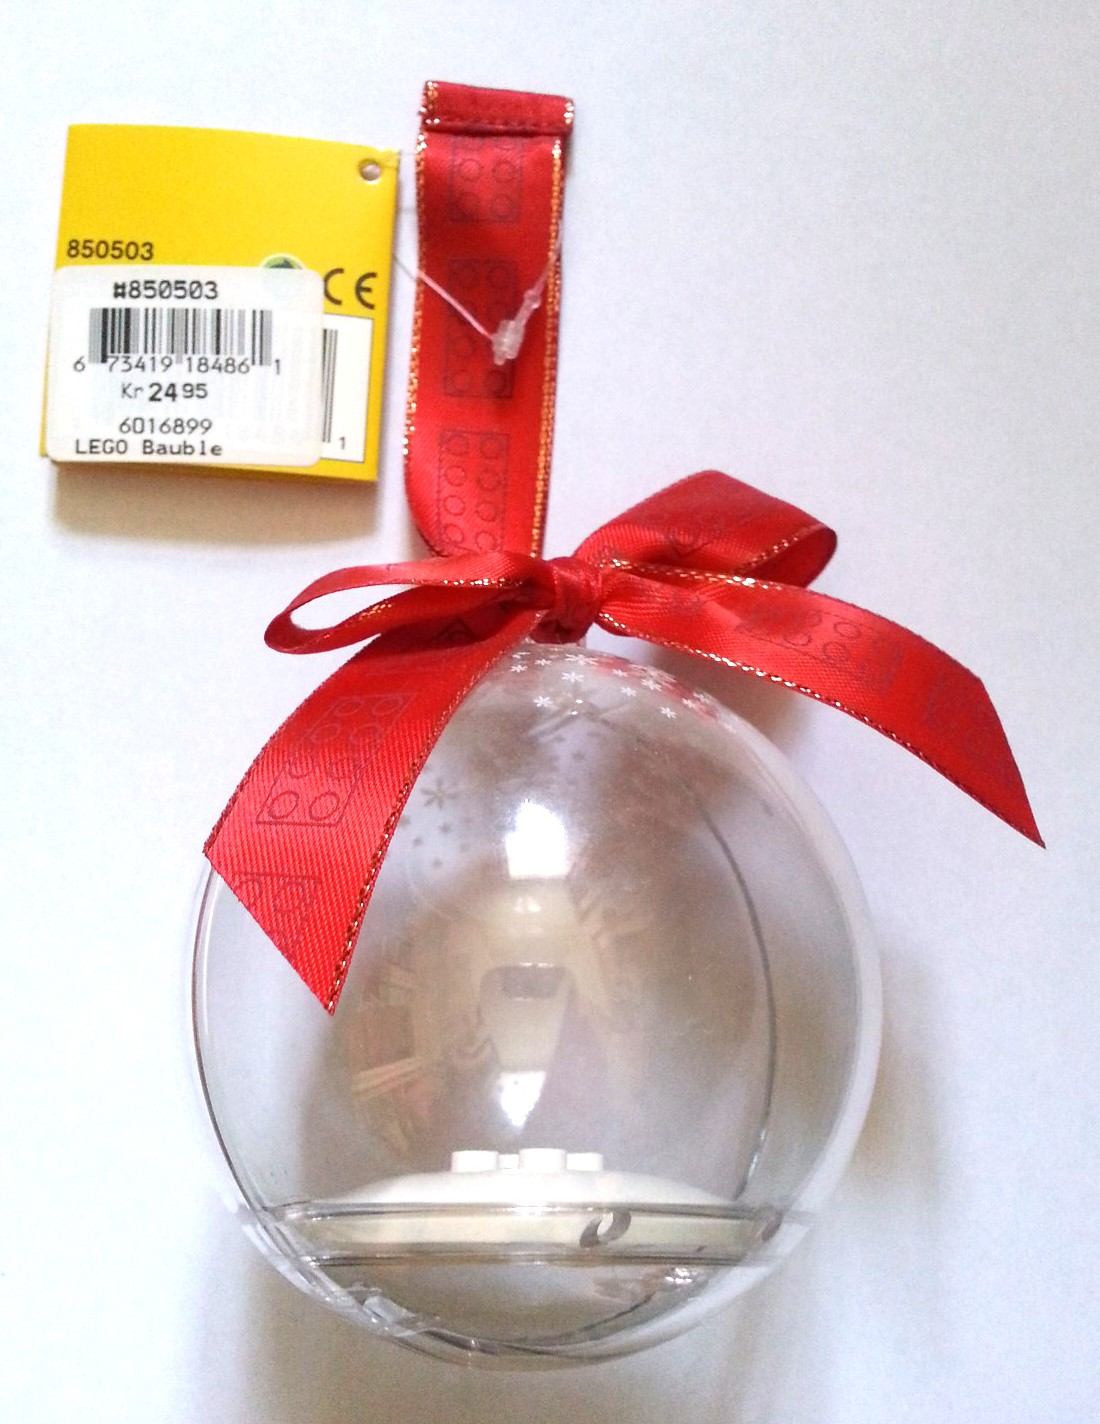 2018 LEGO Gift Holiday Christmas Ornament Ball Bauble 853815 New Presents